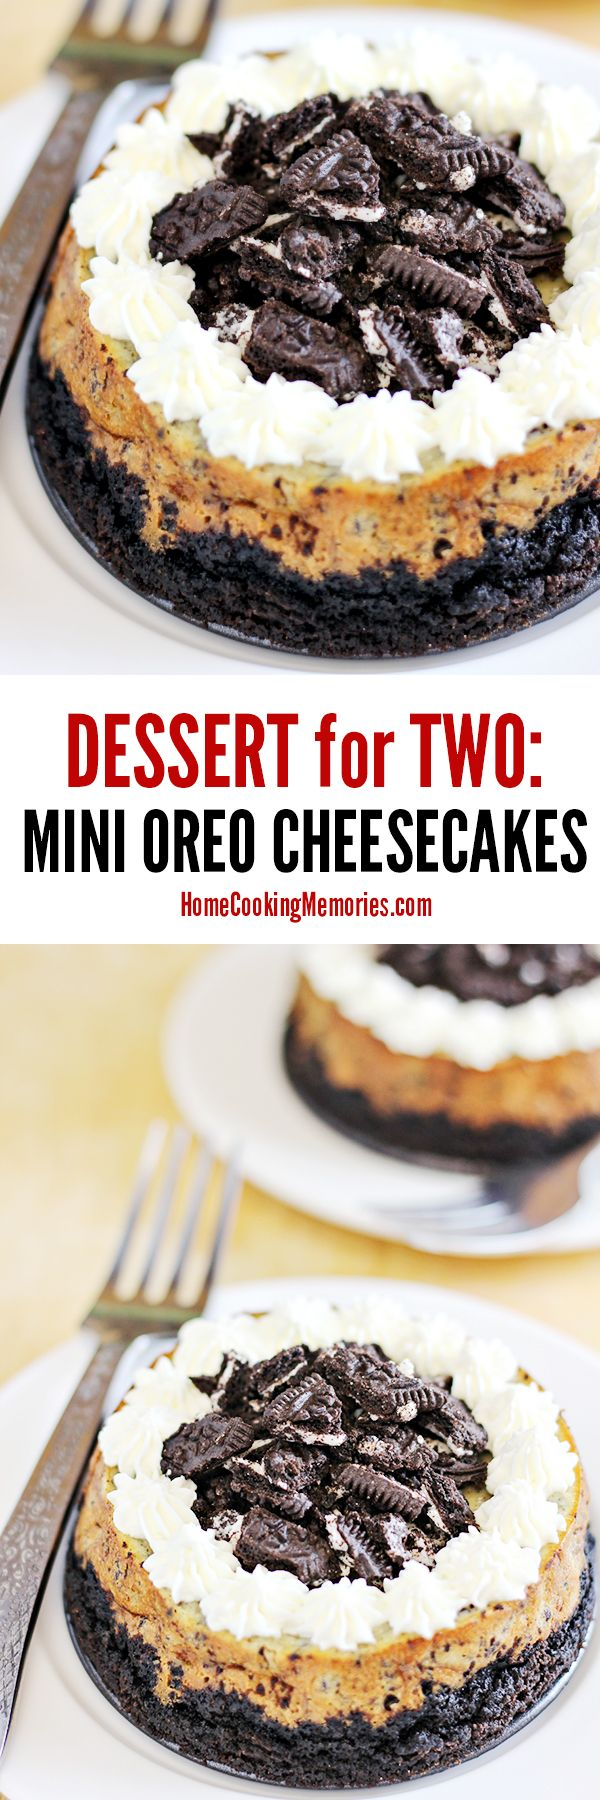 """This dessert for two is a must for Oreo fans! This Mini Oreo Cheesecake recipe makes two small 4"""" cheesecakes made with plenty of crushed Oreo cookies baked into the cheesecake and in the Oreo crust."""